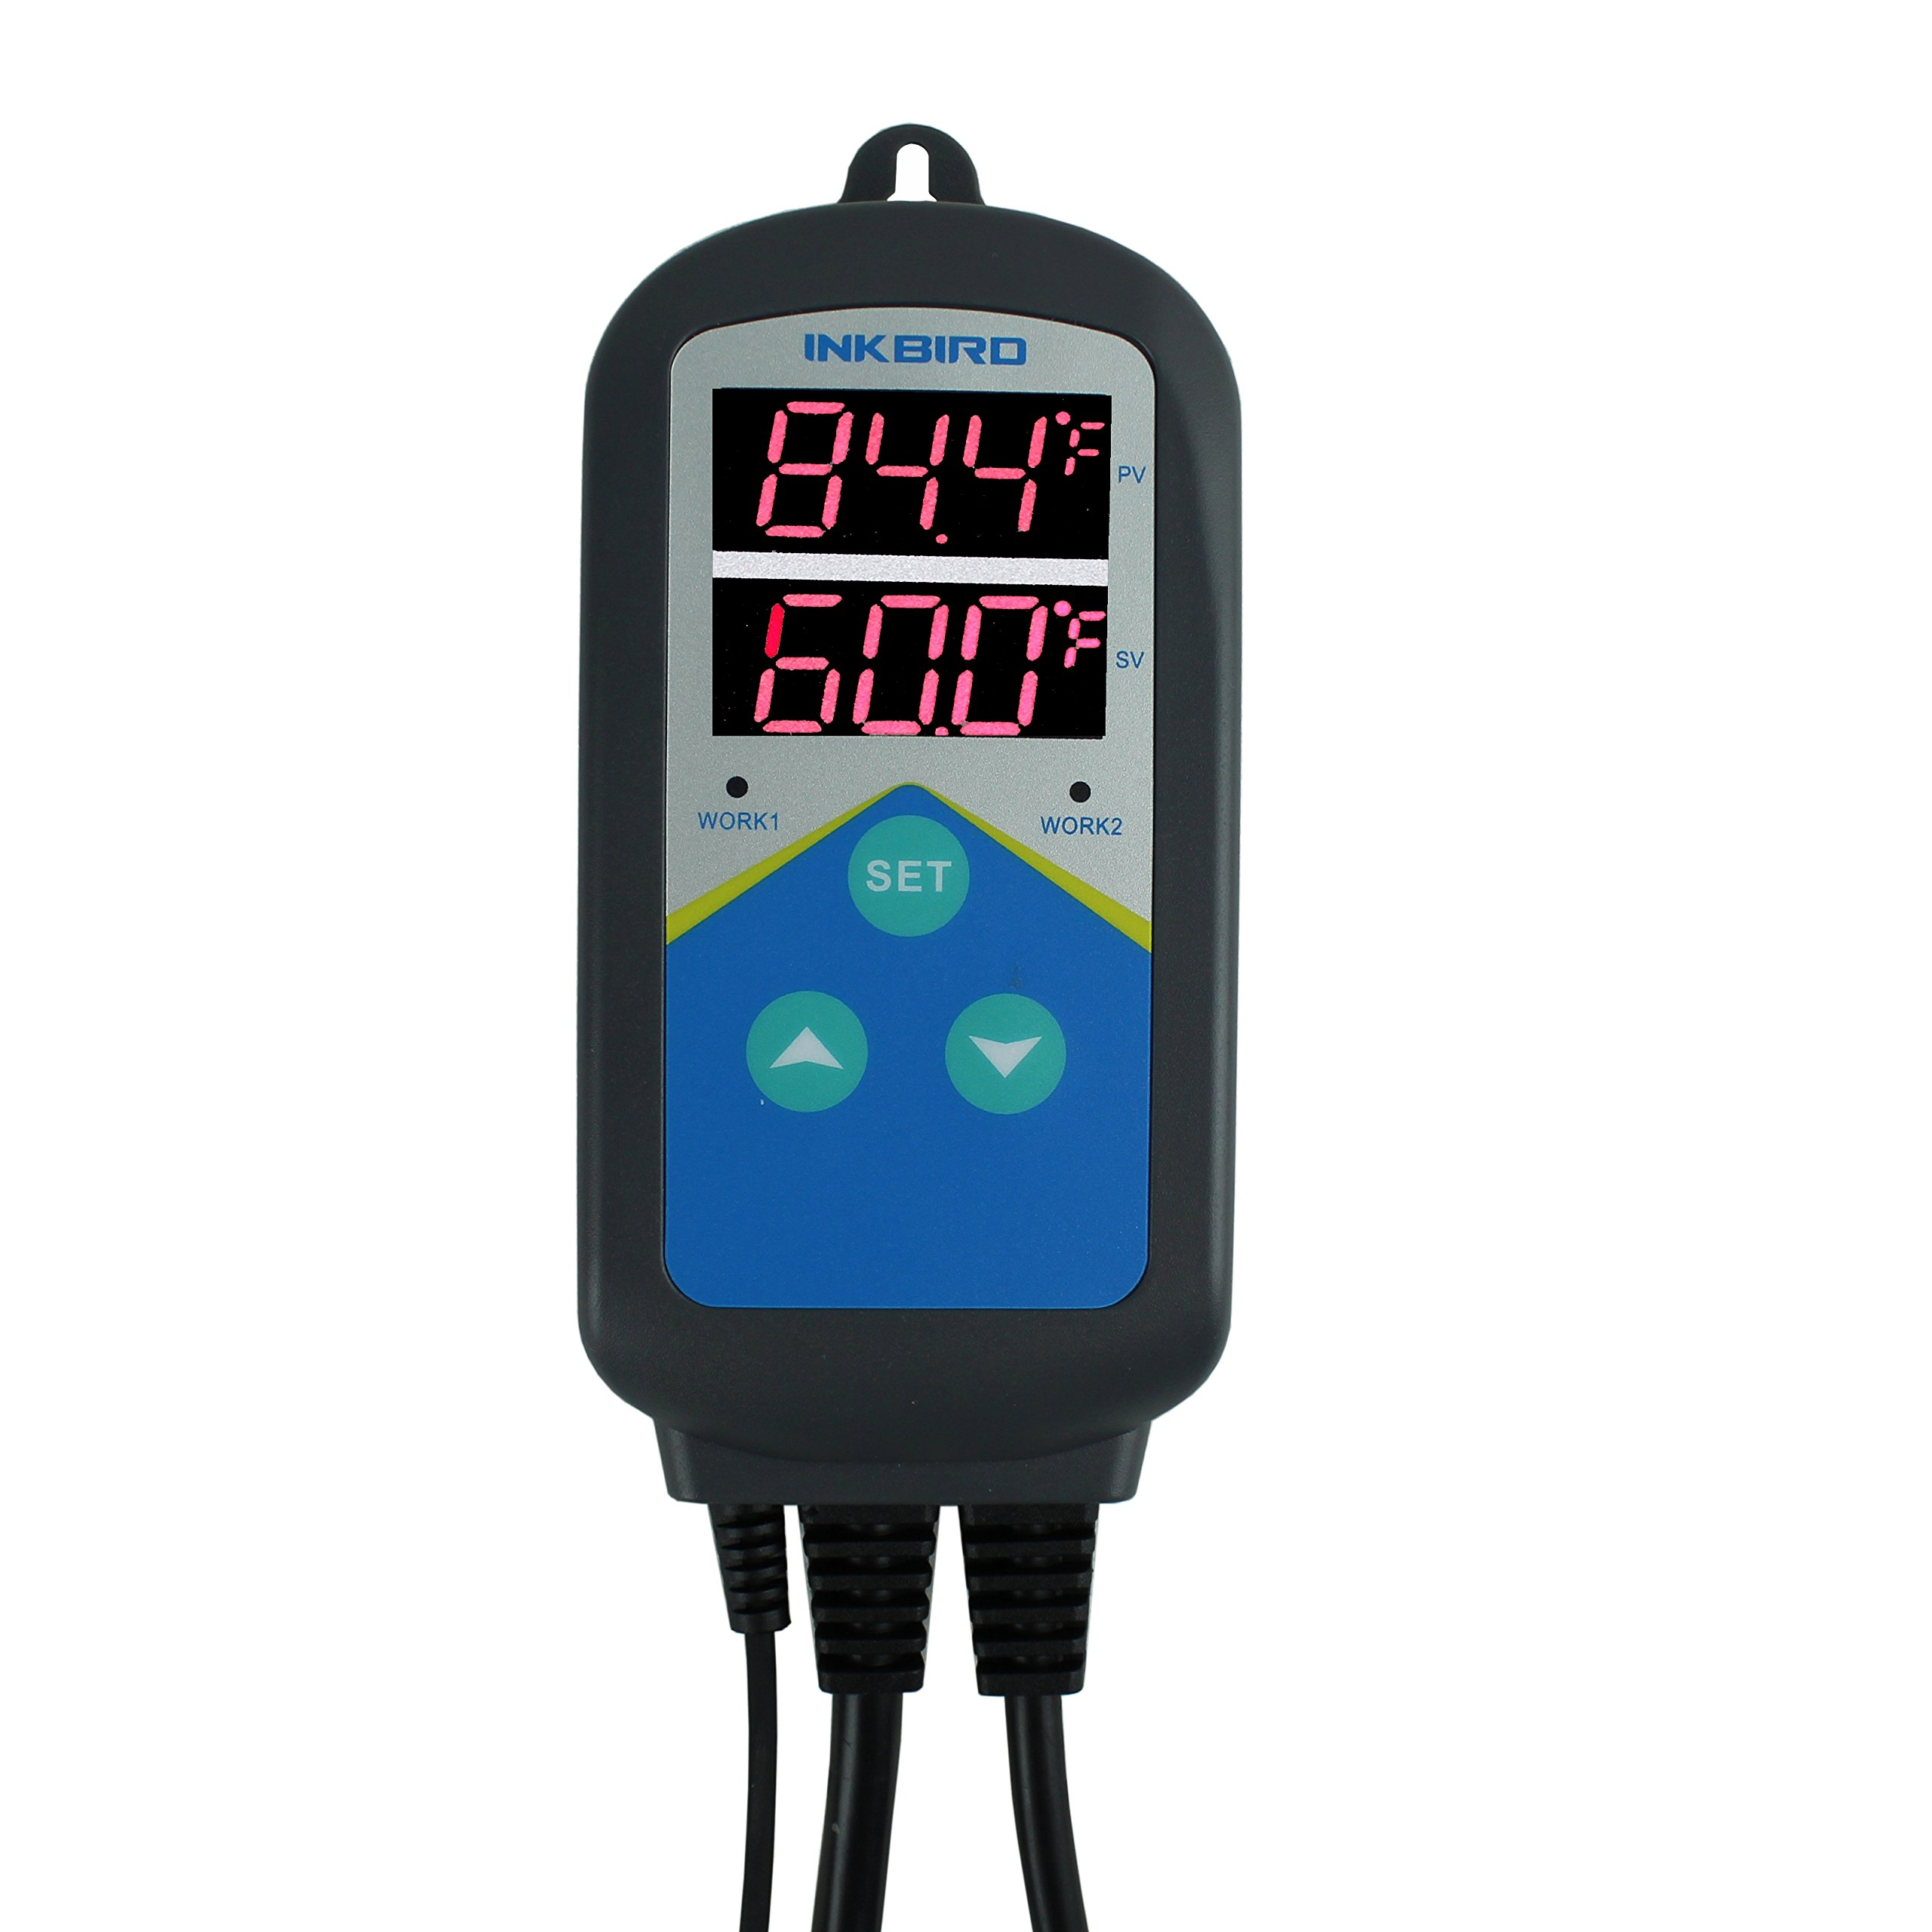 Inkbird Digital Outlet Heat Temperature Controller with Day Night Control for Brewing, Aquarium, Breeding, Reptiles, Hatching, Heat Mat (No Cool Control)